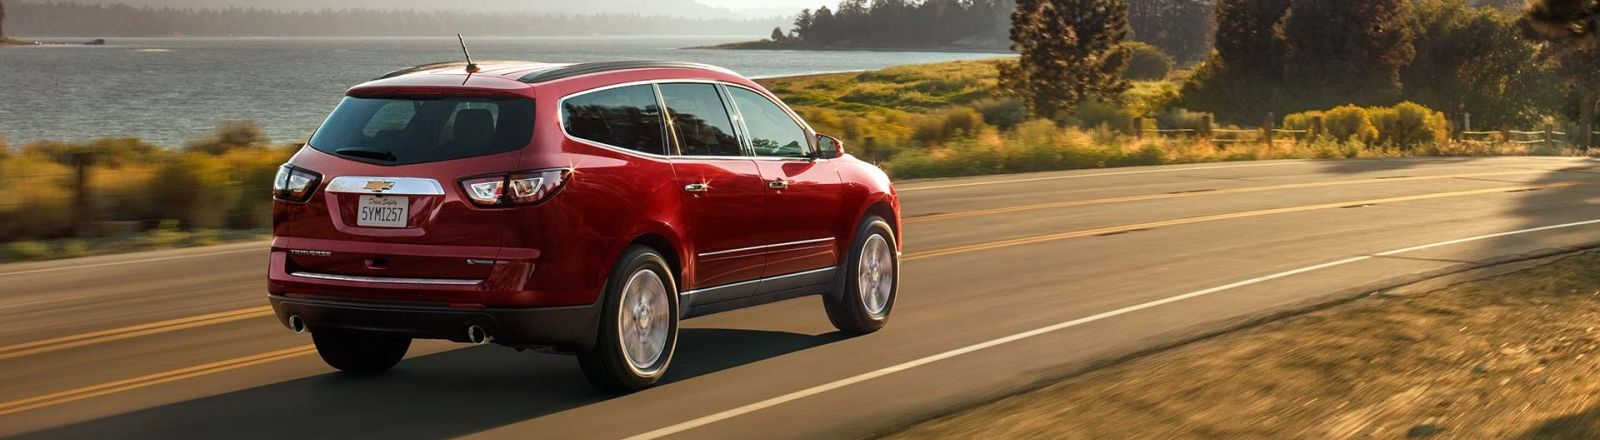 2017 Chevy Traverse for Sale near Washington, DC